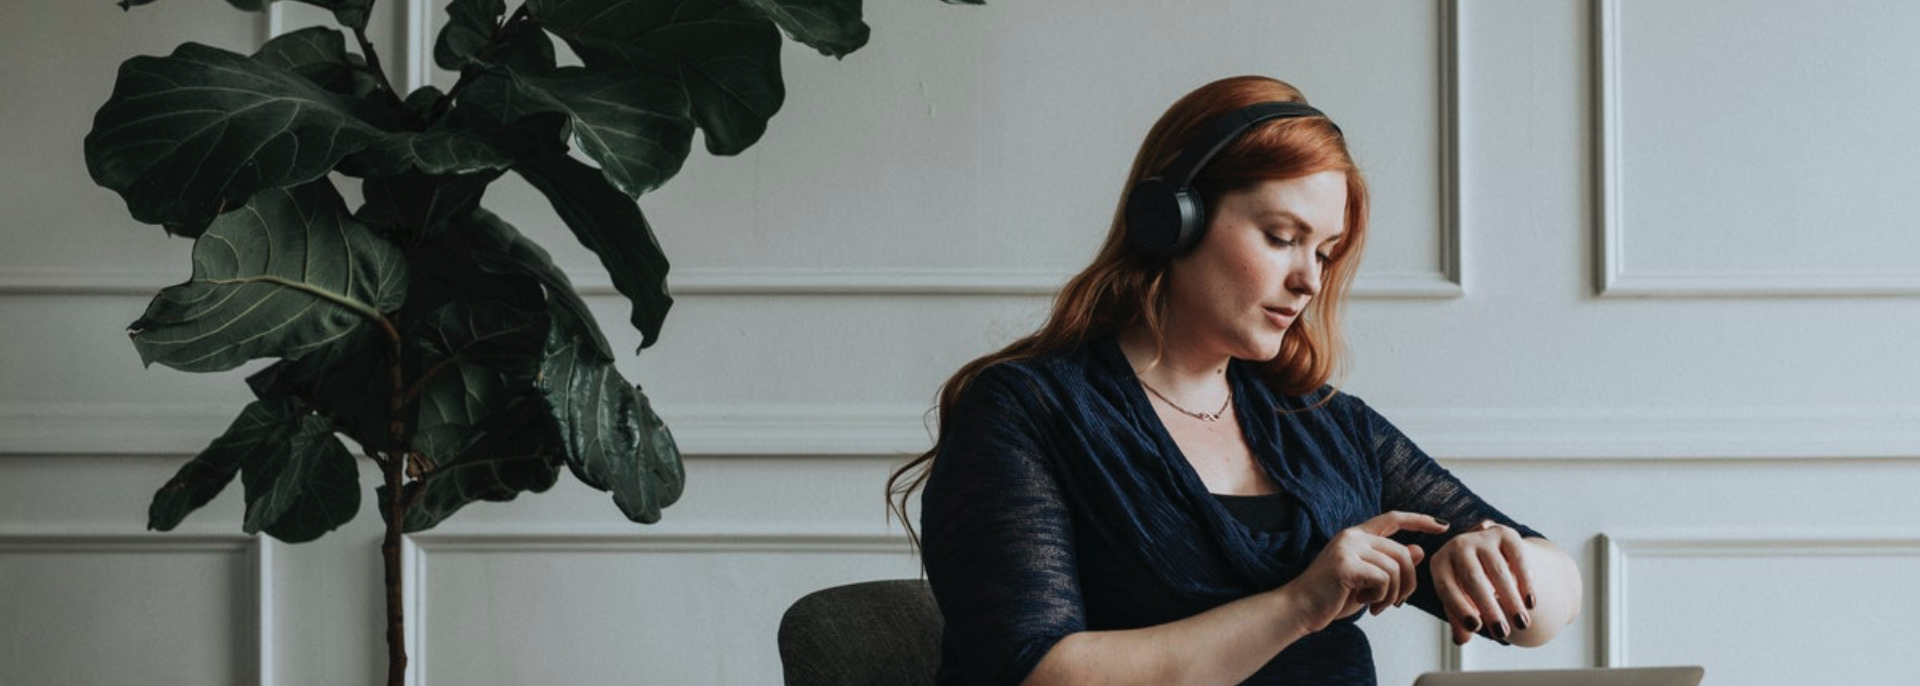 Girl seated, using a laptop with headphones on